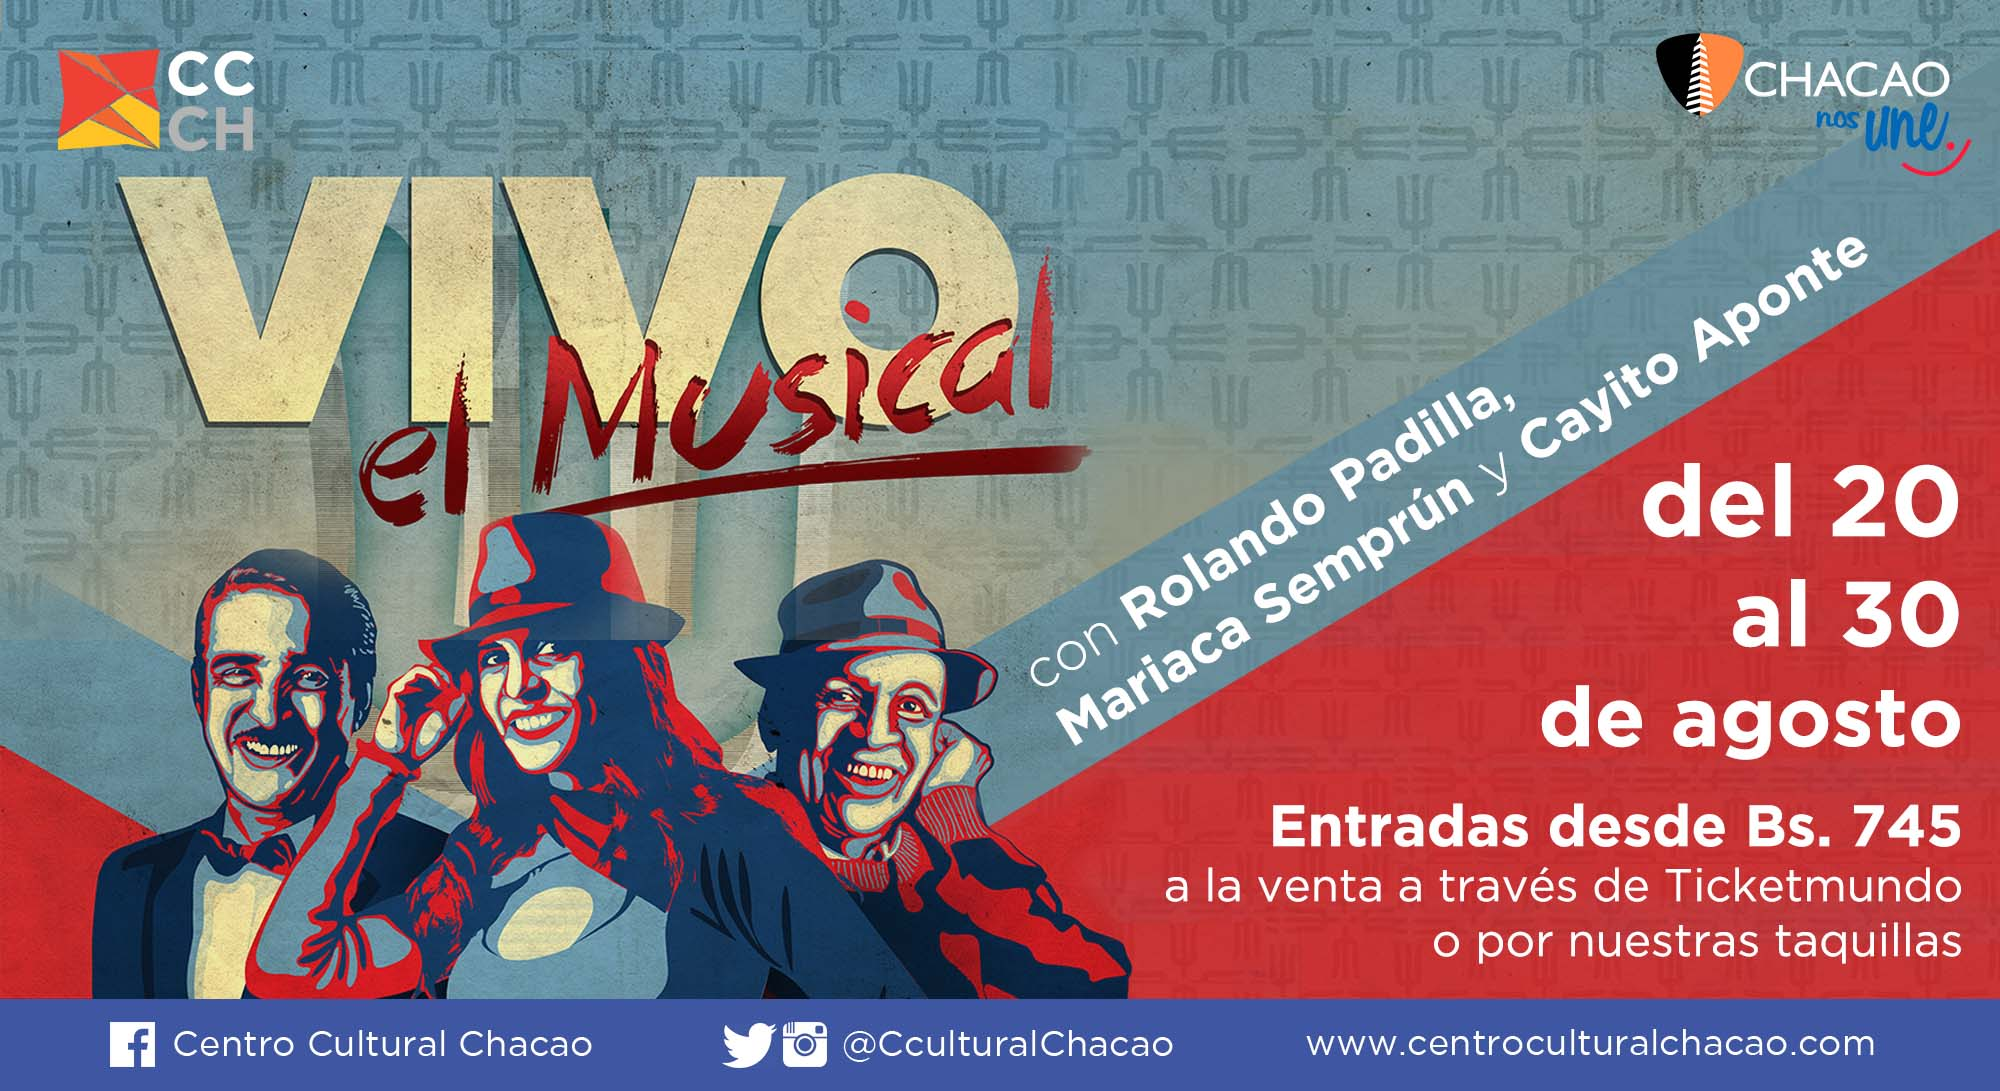 Vivo el musical